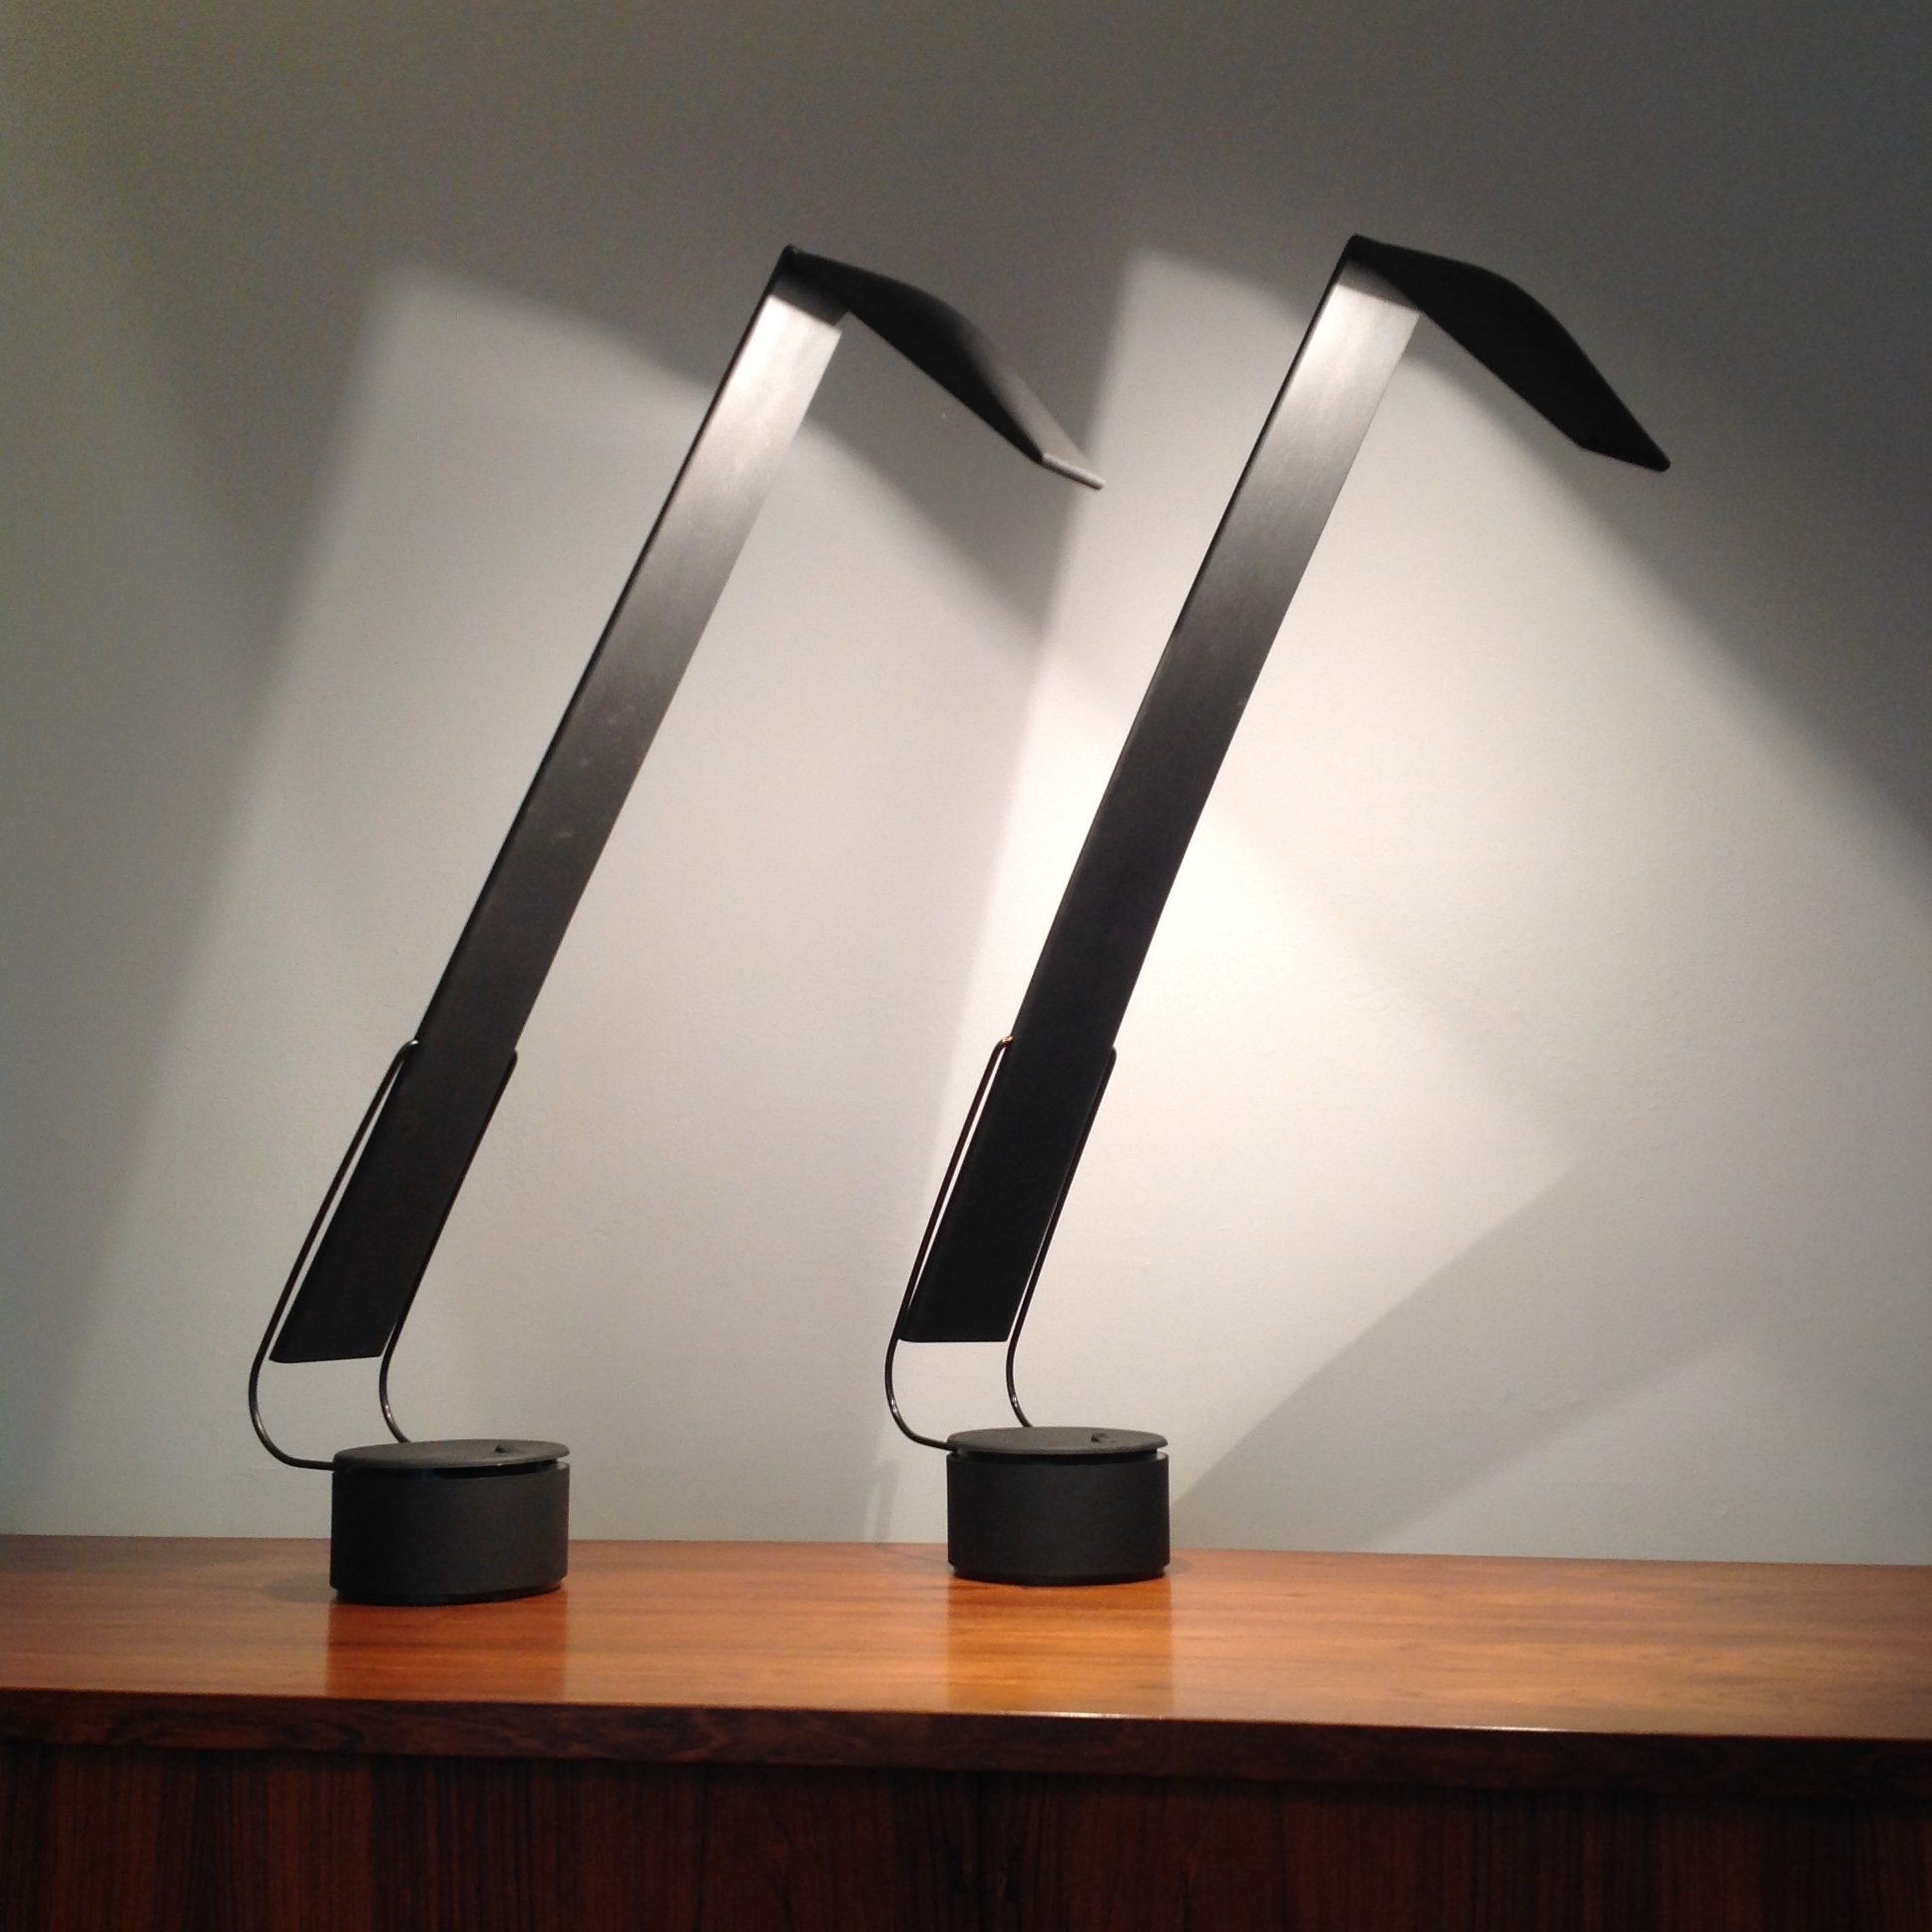 Mario Barbaglia U0026 Marco Colombo For Paf Studio Dove Lamps   Pair   Image 2  Of